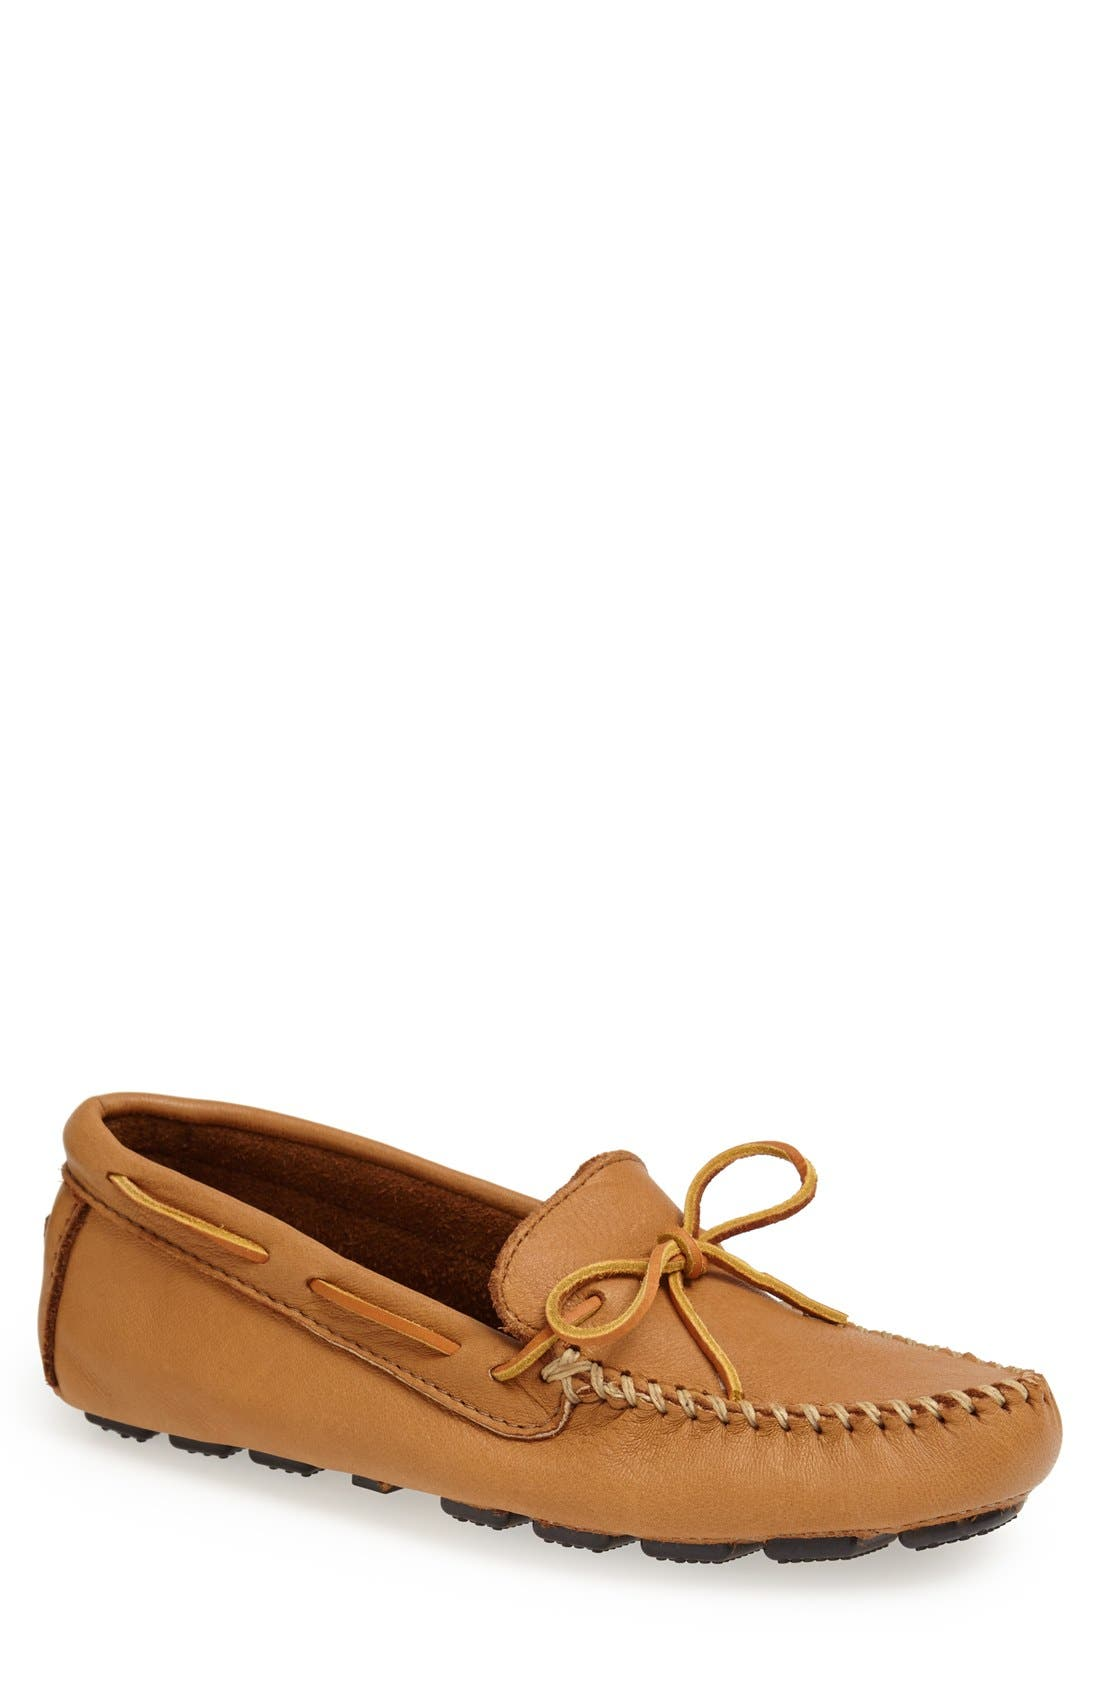 Moosehide Driving Shoe,                         Main,                         color, NATURAL